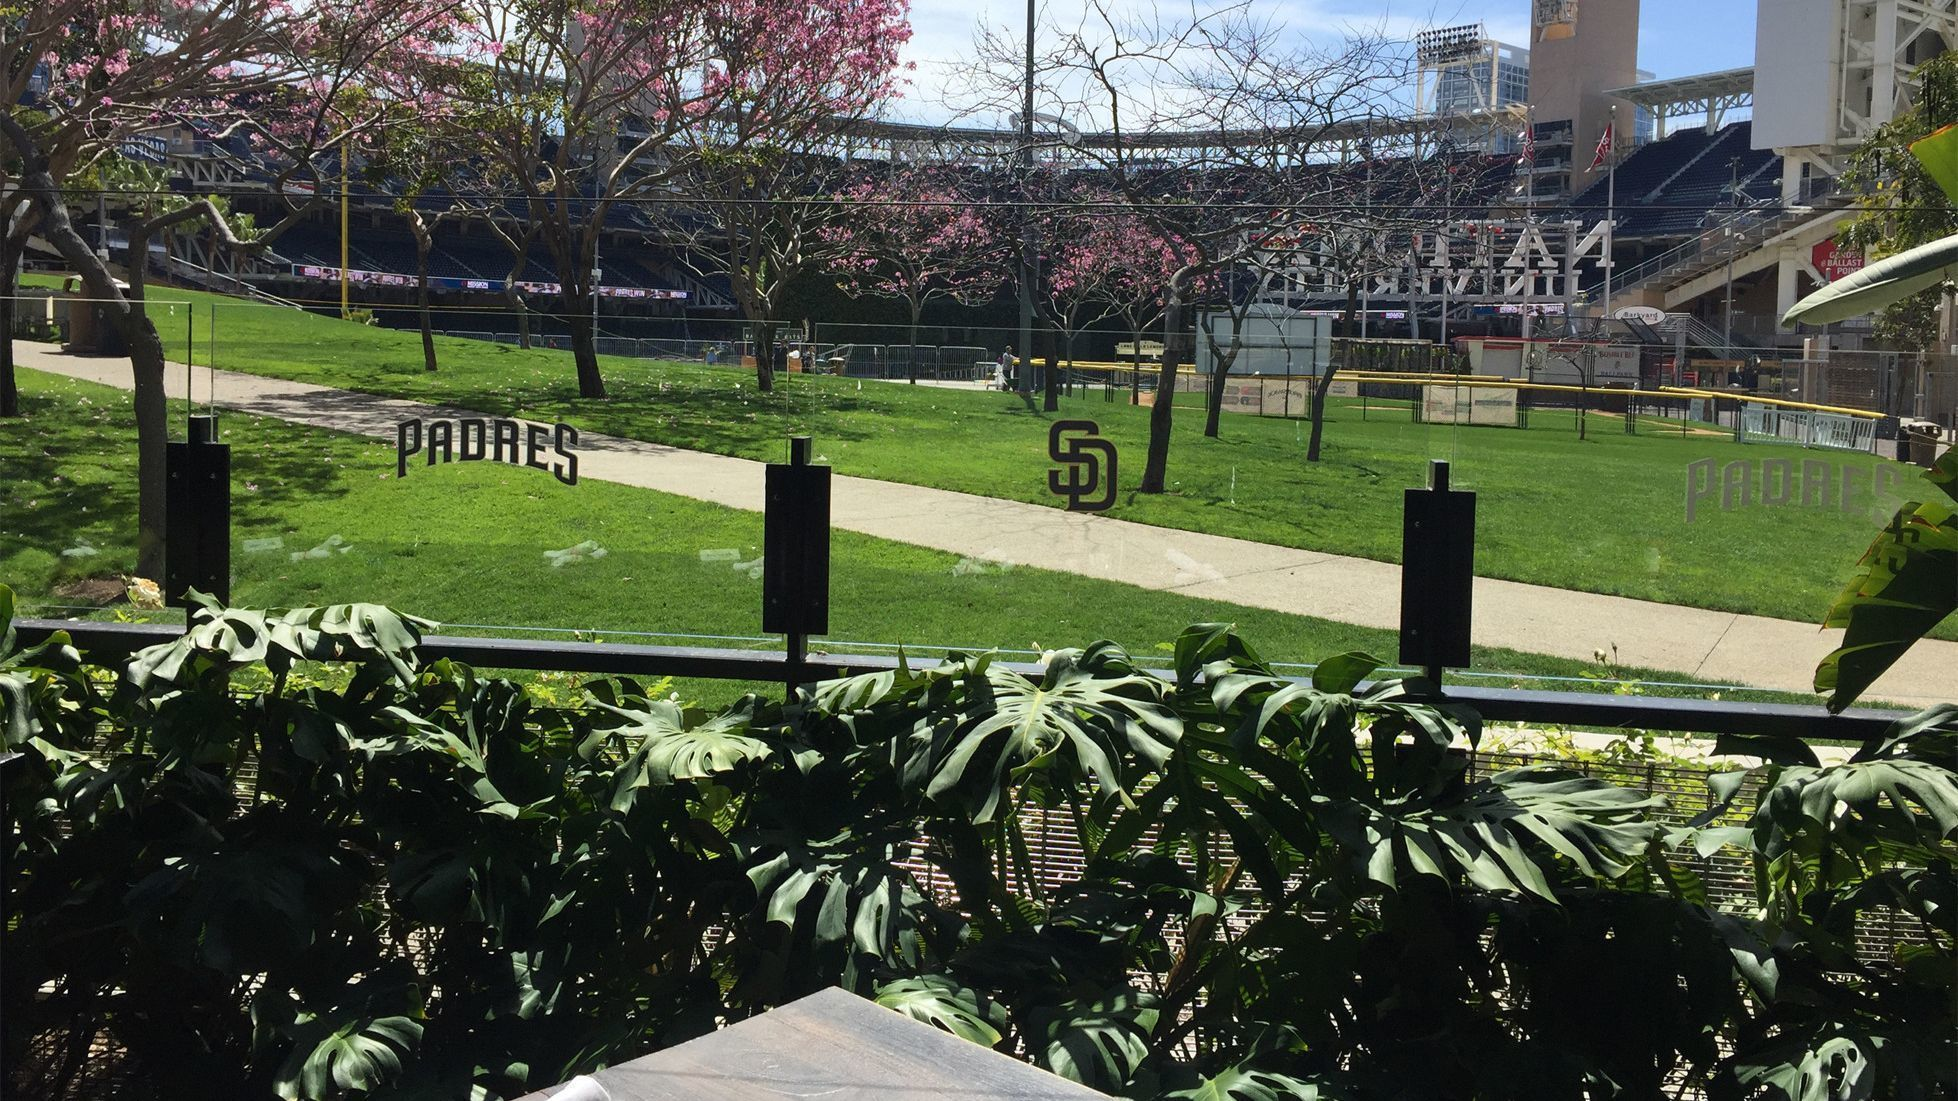 Ballpark bites: Our 18 picks for spots to eat and drink outside Petco Park